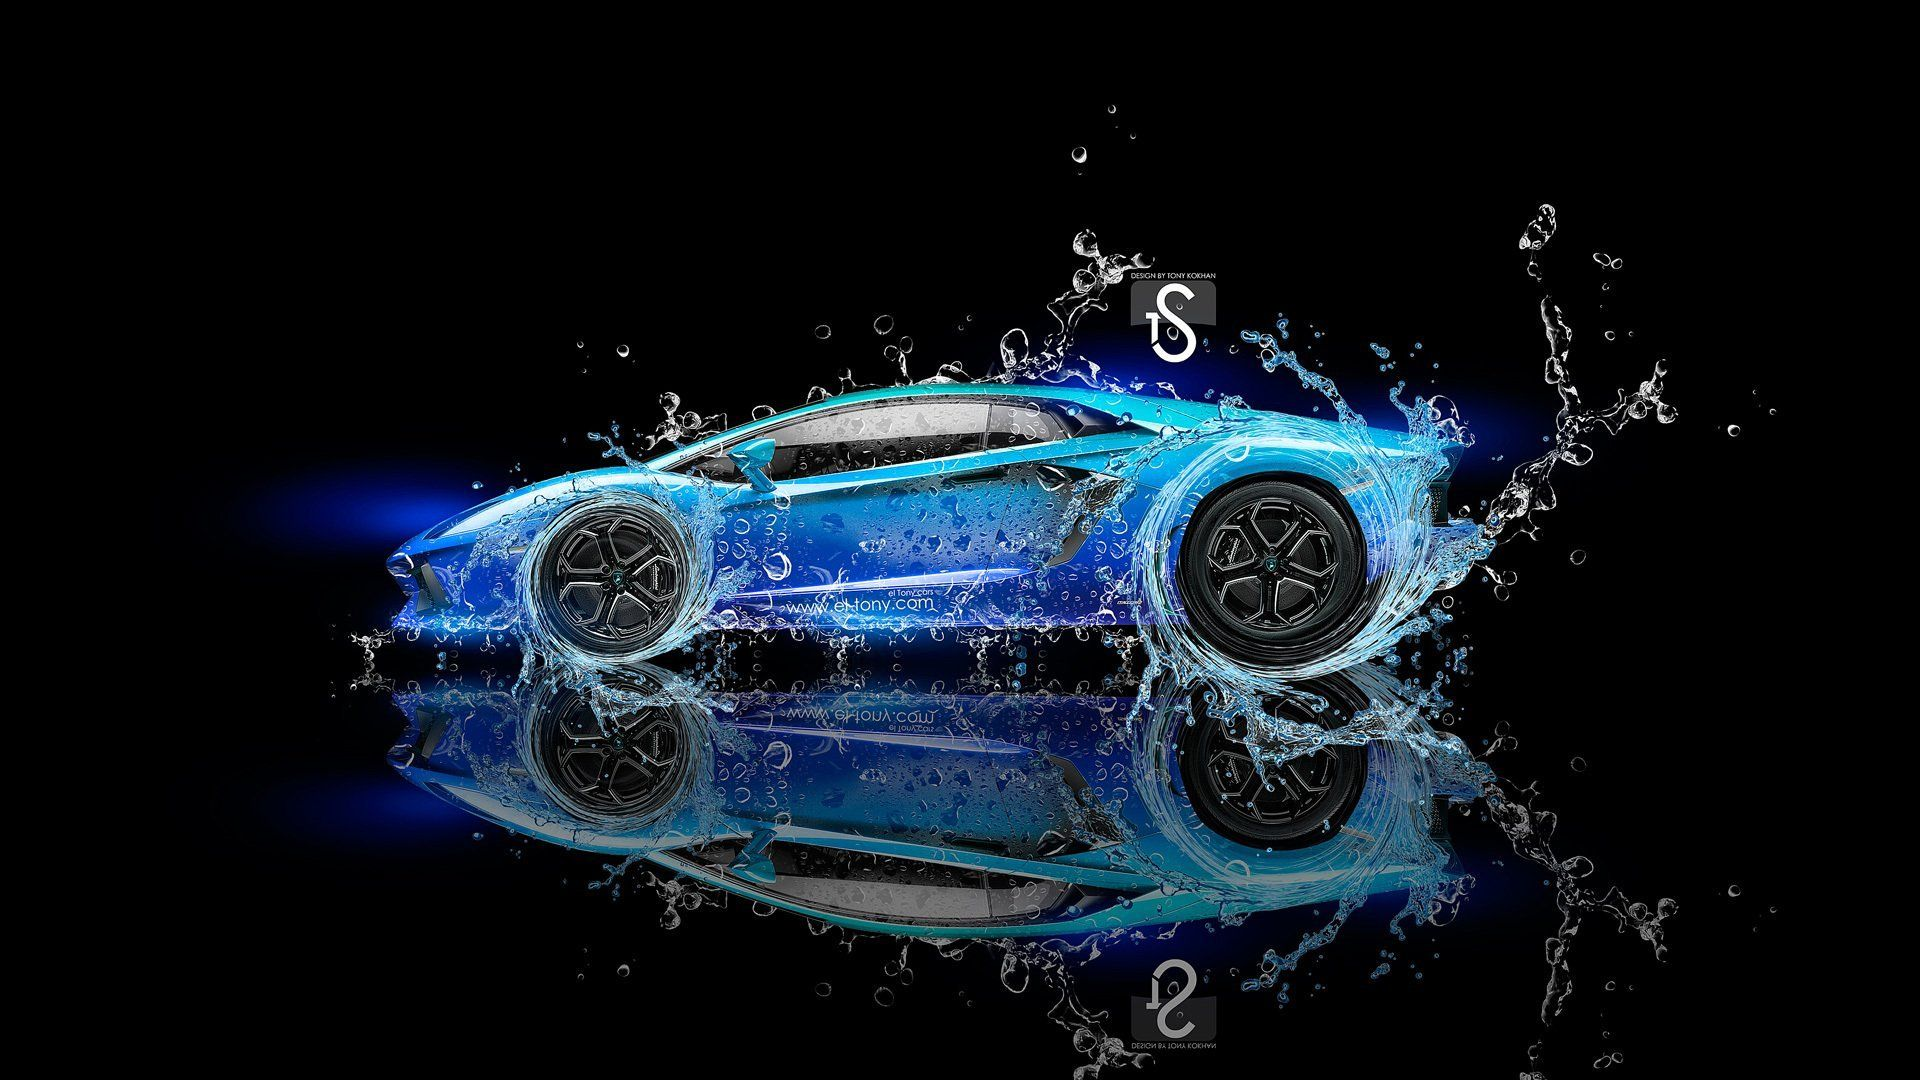 Lamborghini Aventador Water Fantasy Neon Blue El Tony Cars Tony Kokhan  Design Black Lamborghini Water Effects Black Background Blue Neon Neon  Photoshop HD ...